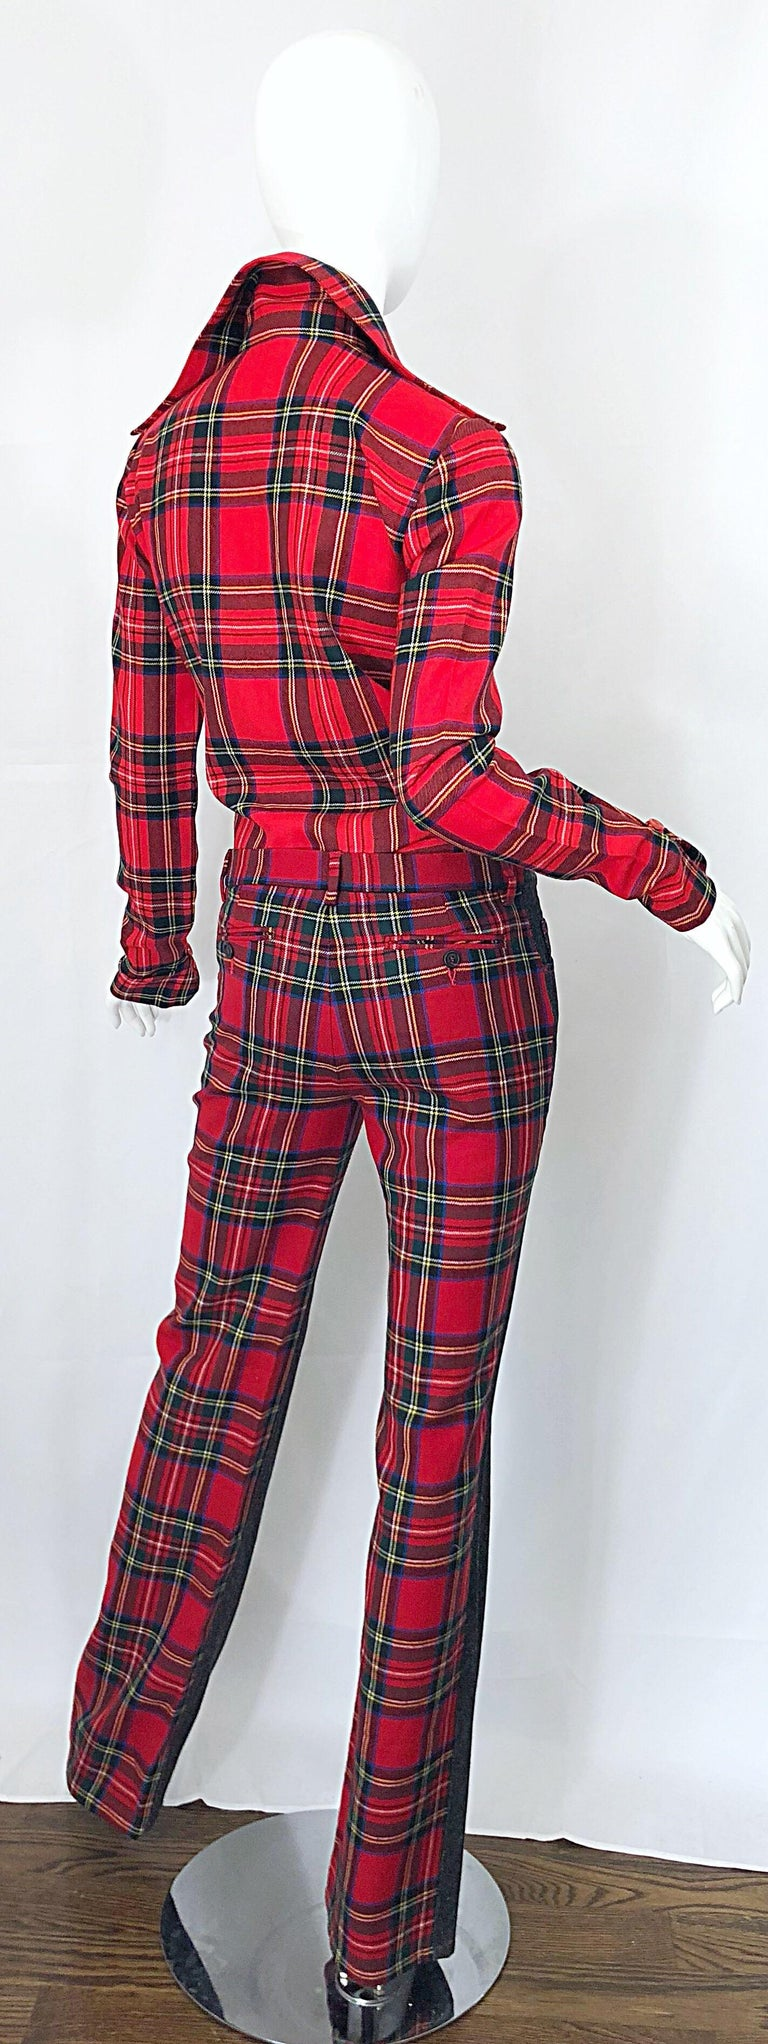 Brown Rare 1990s Dolce & Gabbana Red Tartan Plaid Wool + Denim Flared Jeans and Shirt For Sale